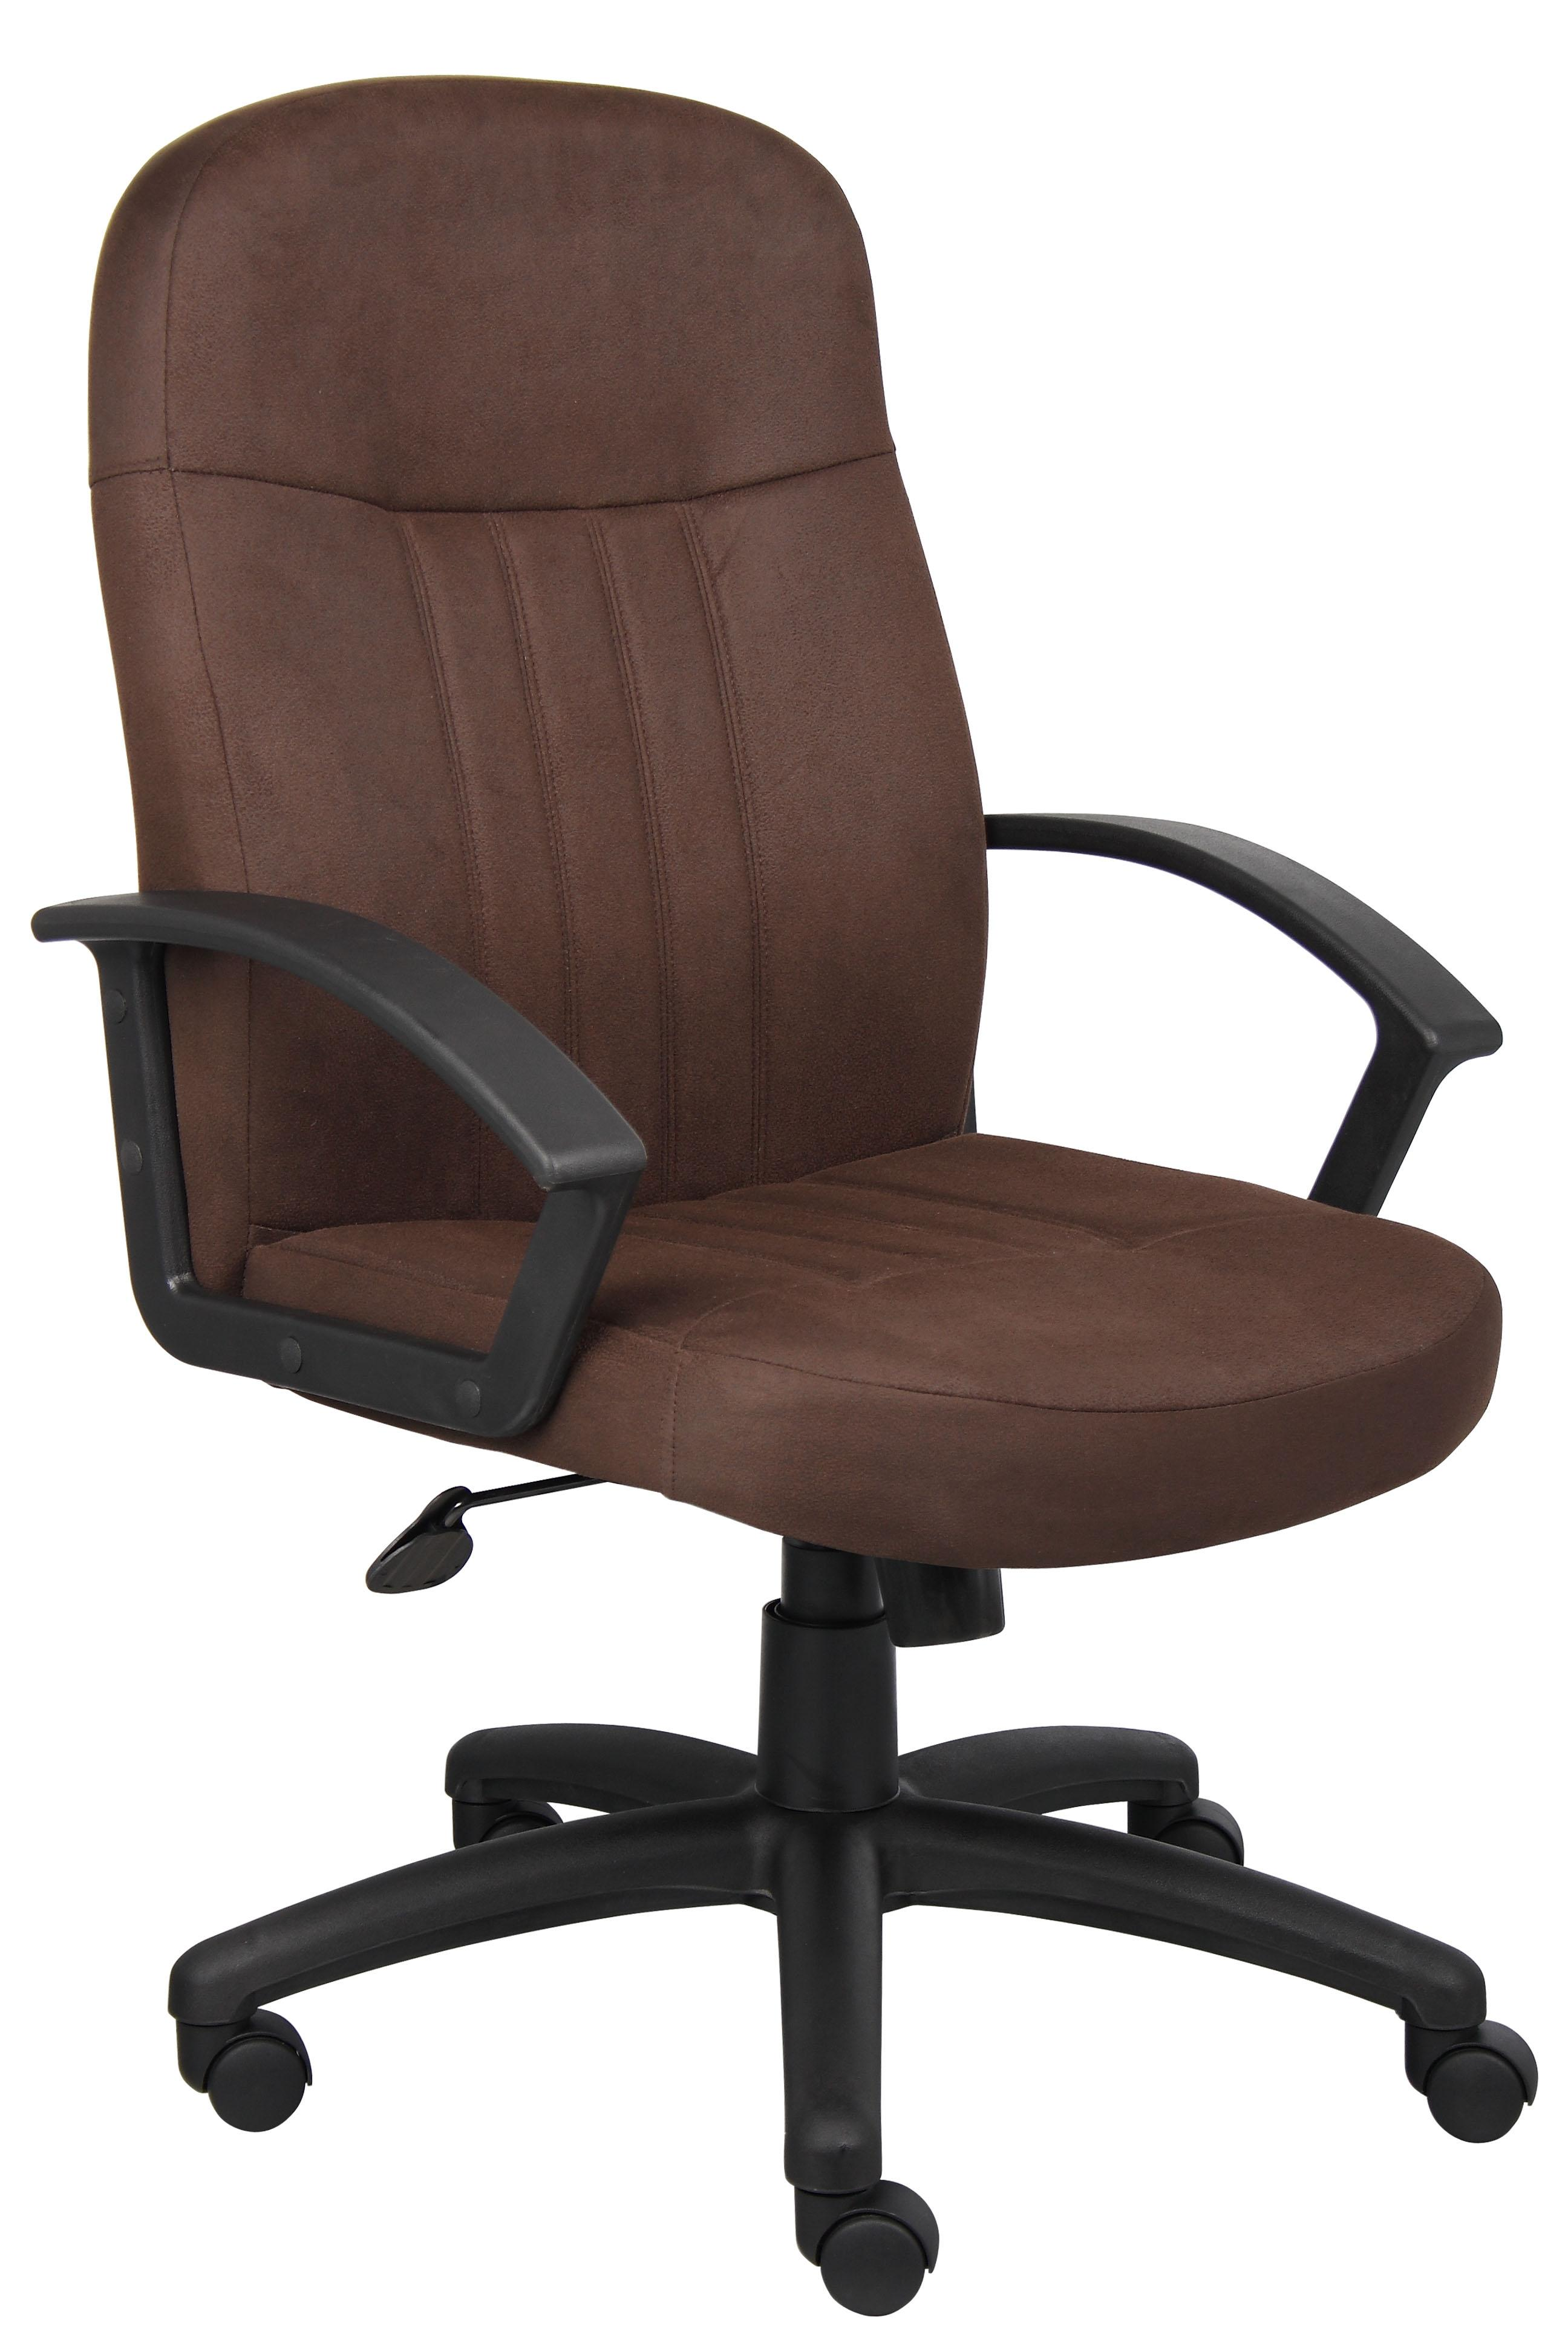 Executive Chairs Executive Chair by Presidential Seating at Westrich Furniture & Appliances